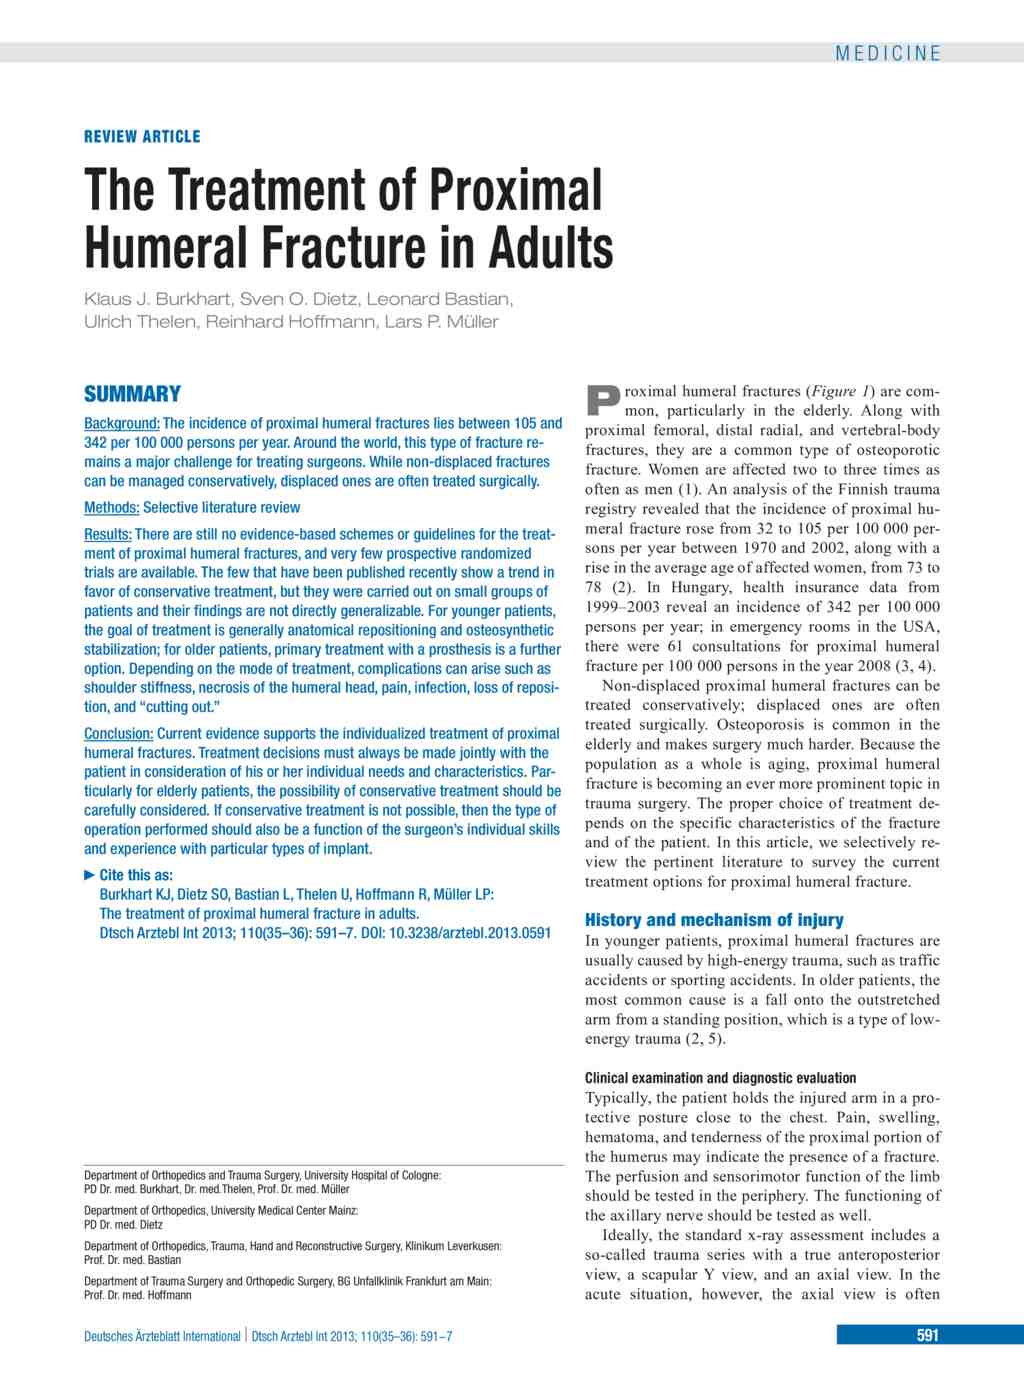 The Treatment of Proximal Humeral Fracture in Adults (02.09.2013)